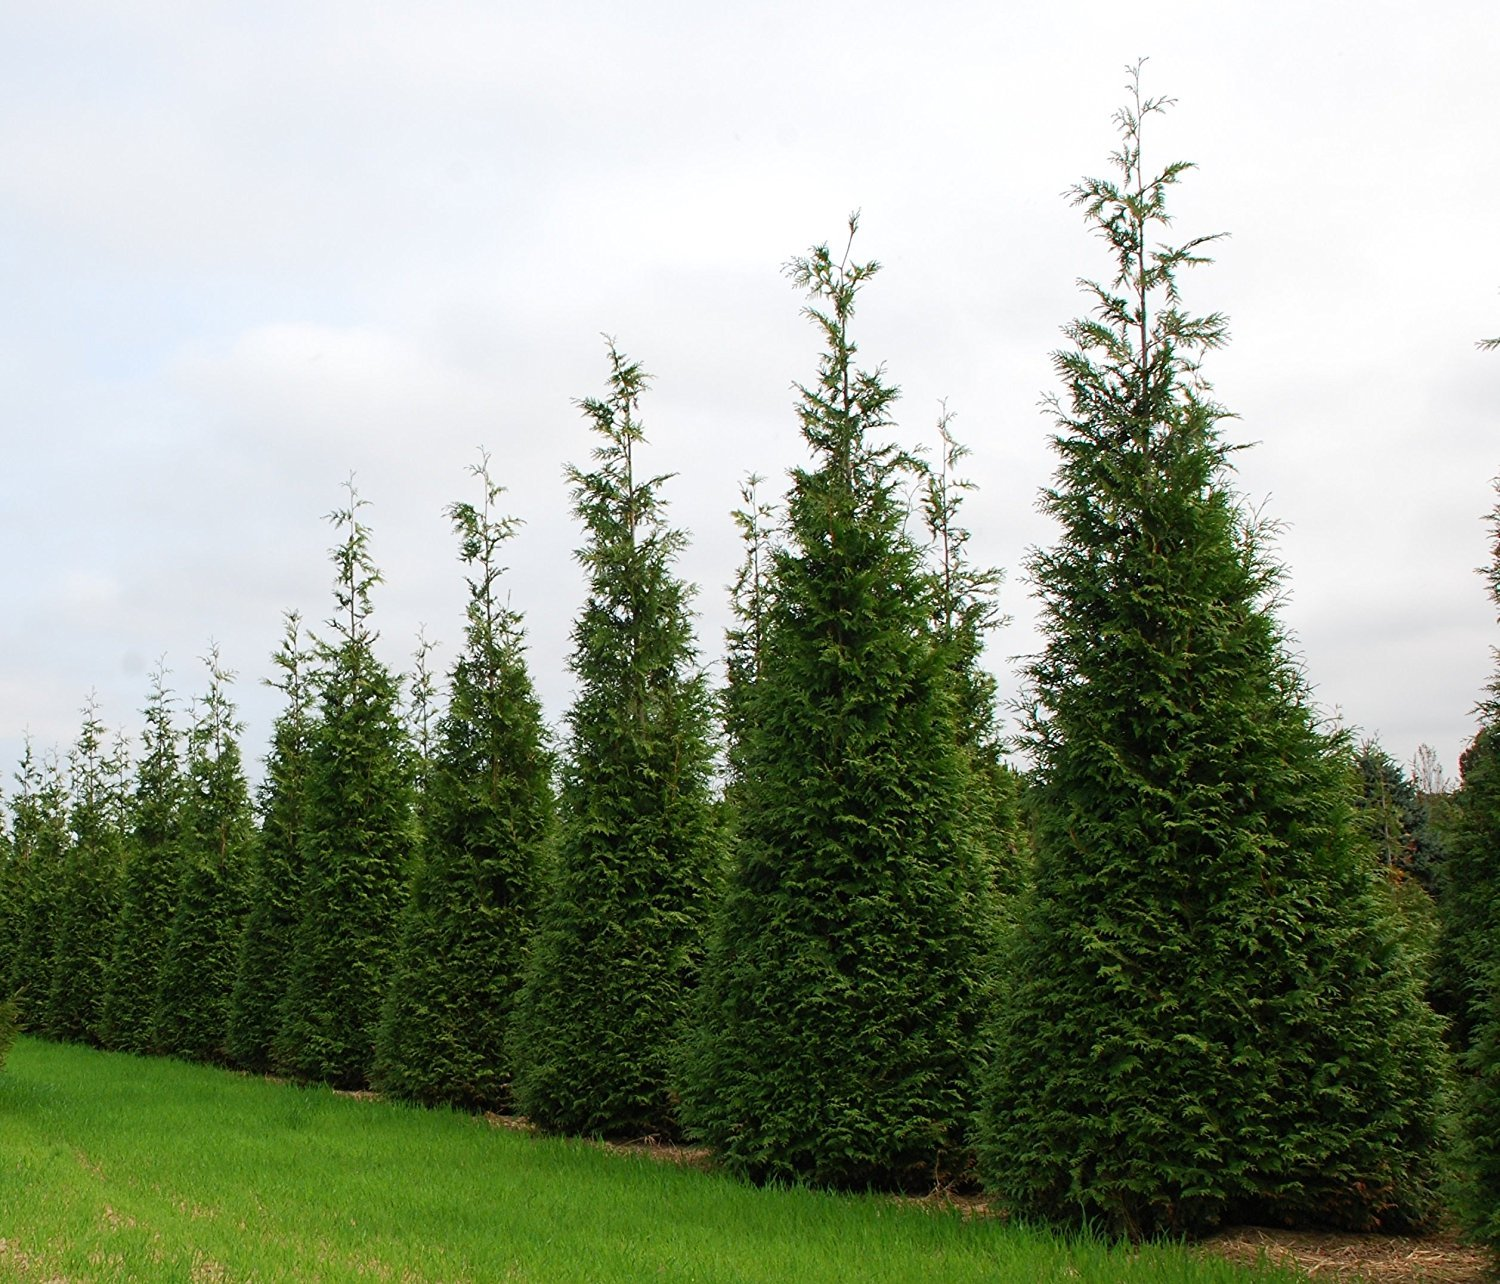 Thuja Green Giant Arborvitae Qty 5 Live Trees Evergreen Privacy - 2'' Container by Florida Foliage (Image #1)